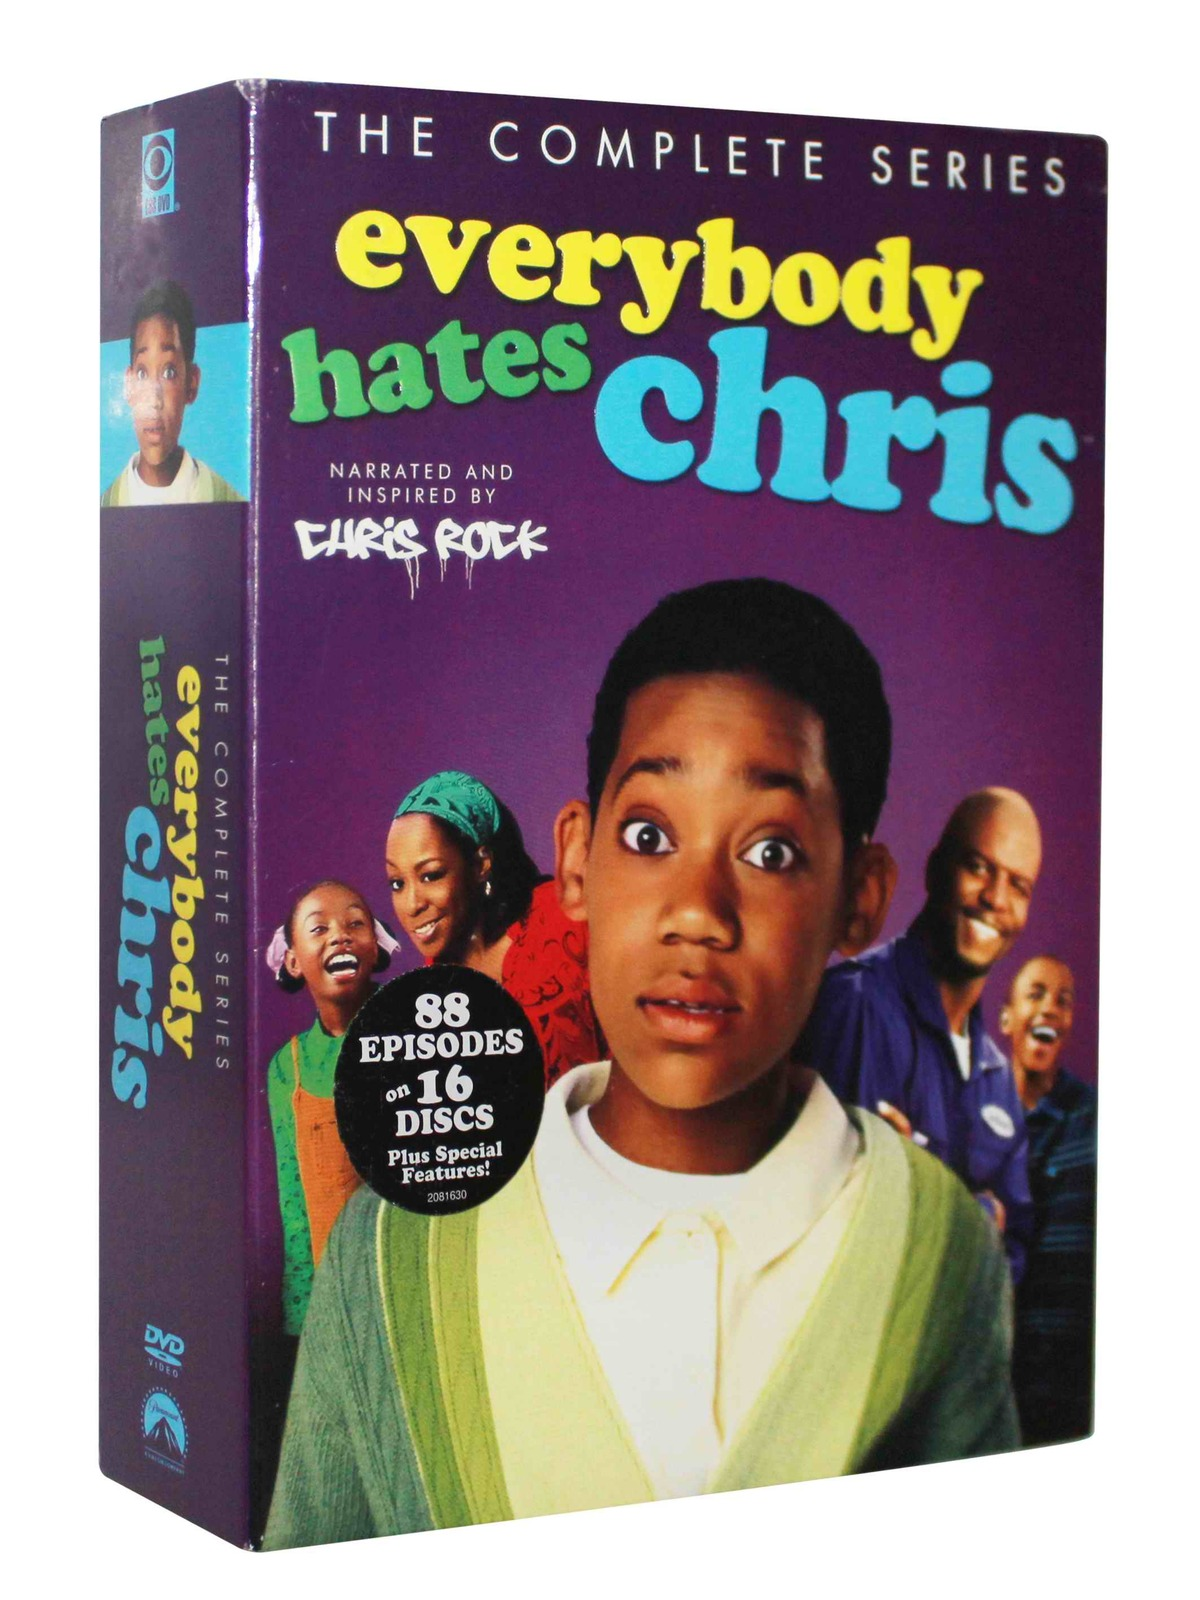 Everybody Hates Chris The Complete Series DVD Box Set 16 Disc Free Shipping New